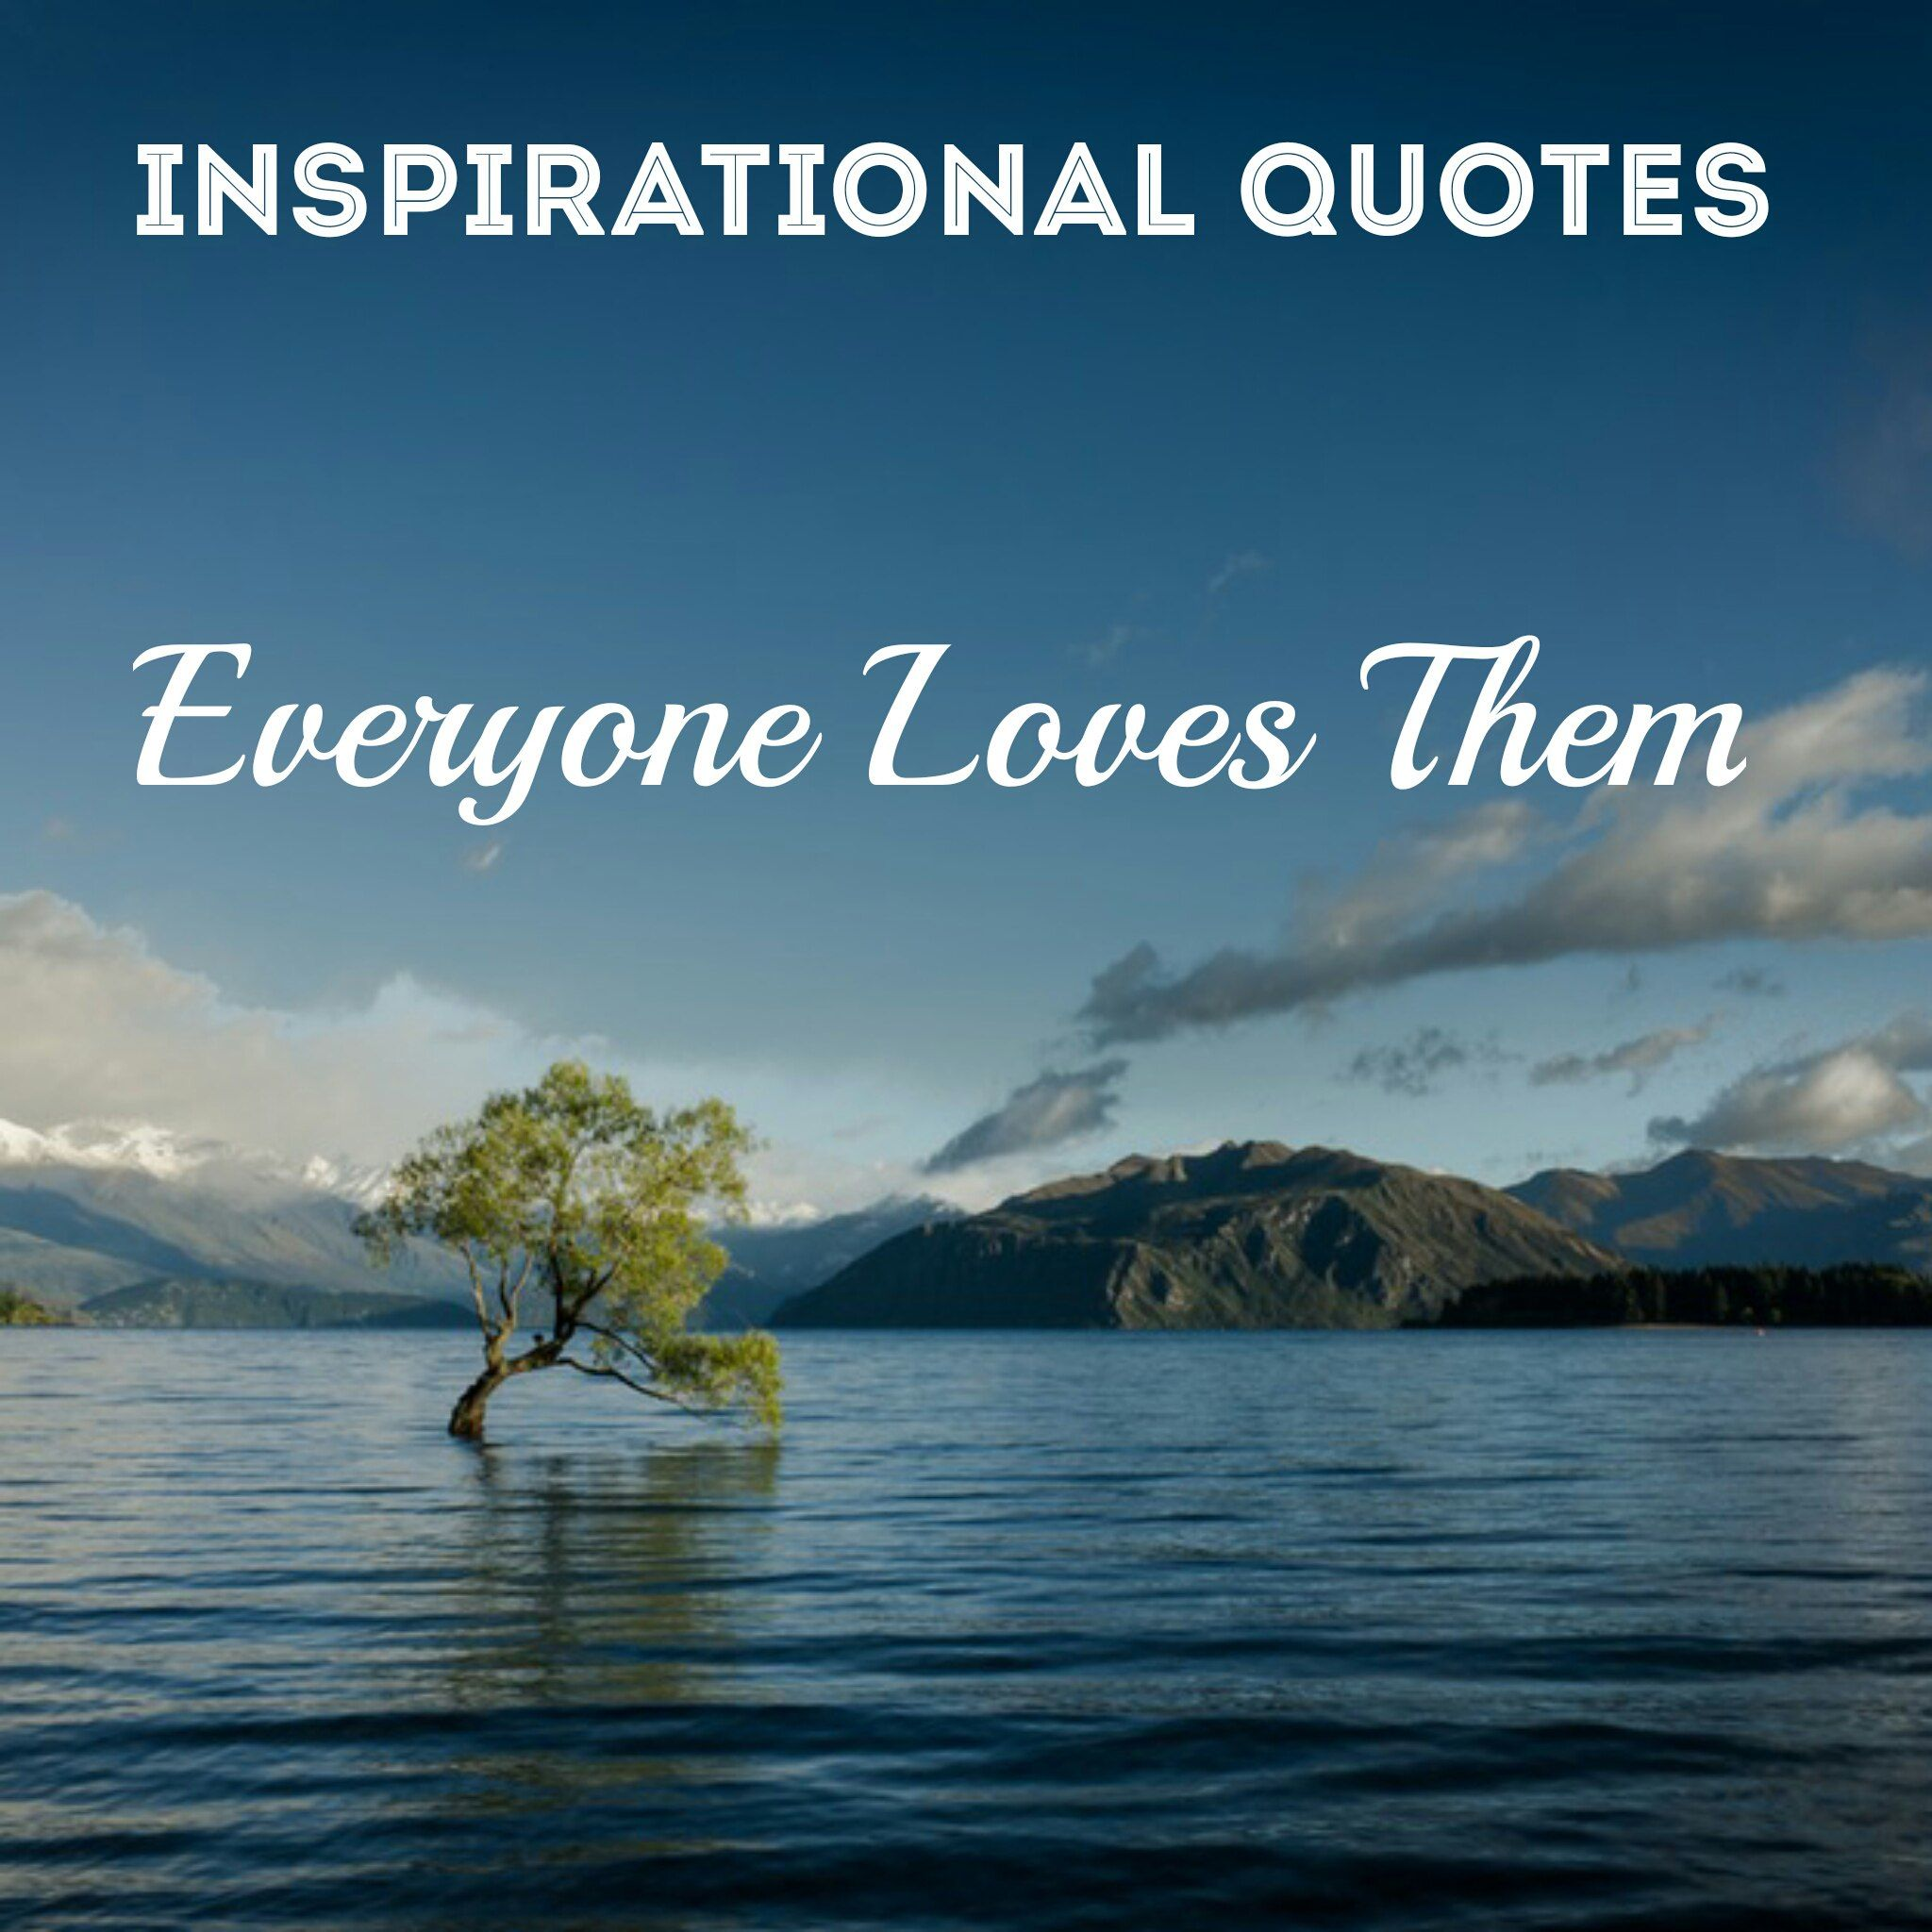 Inspirational Quotes: 154 Best Inspirational Quotes & Sayings Of All Time